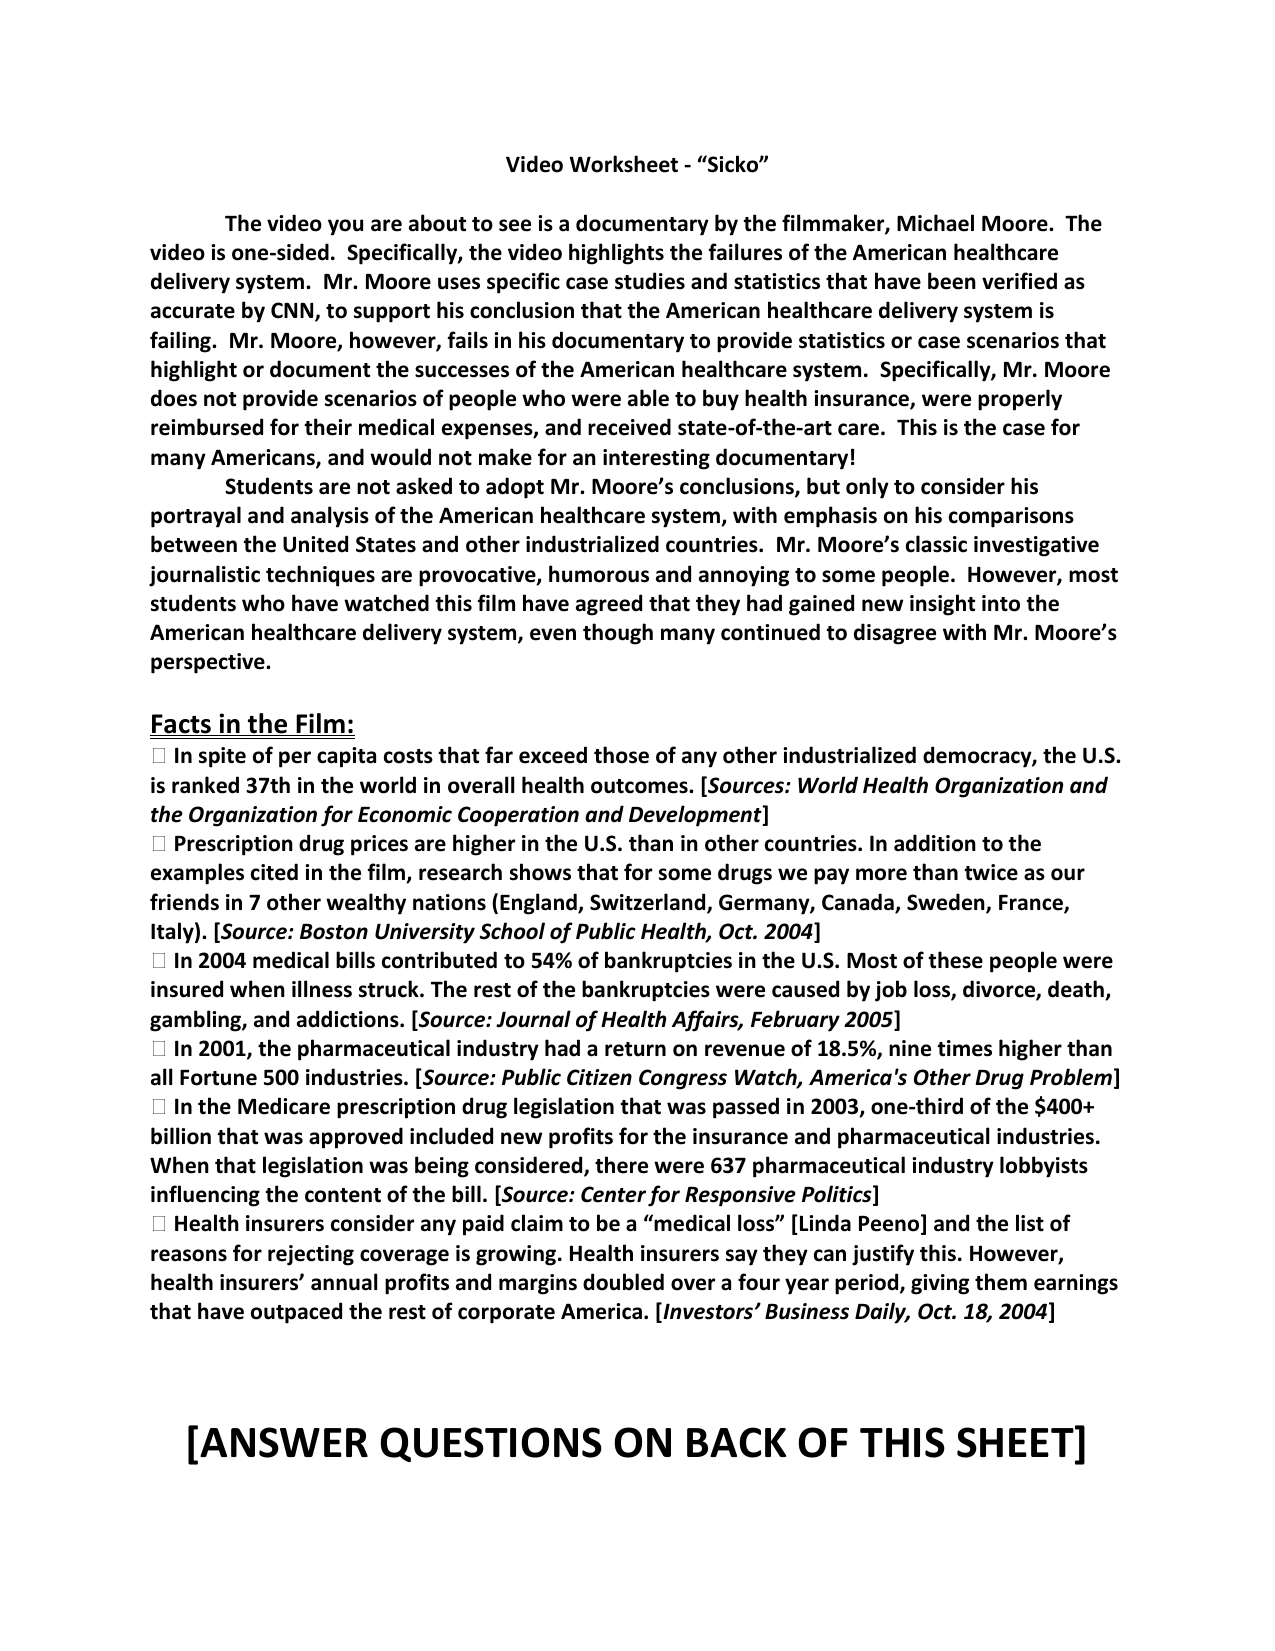 Sicko Information Sheet Discussion Questions